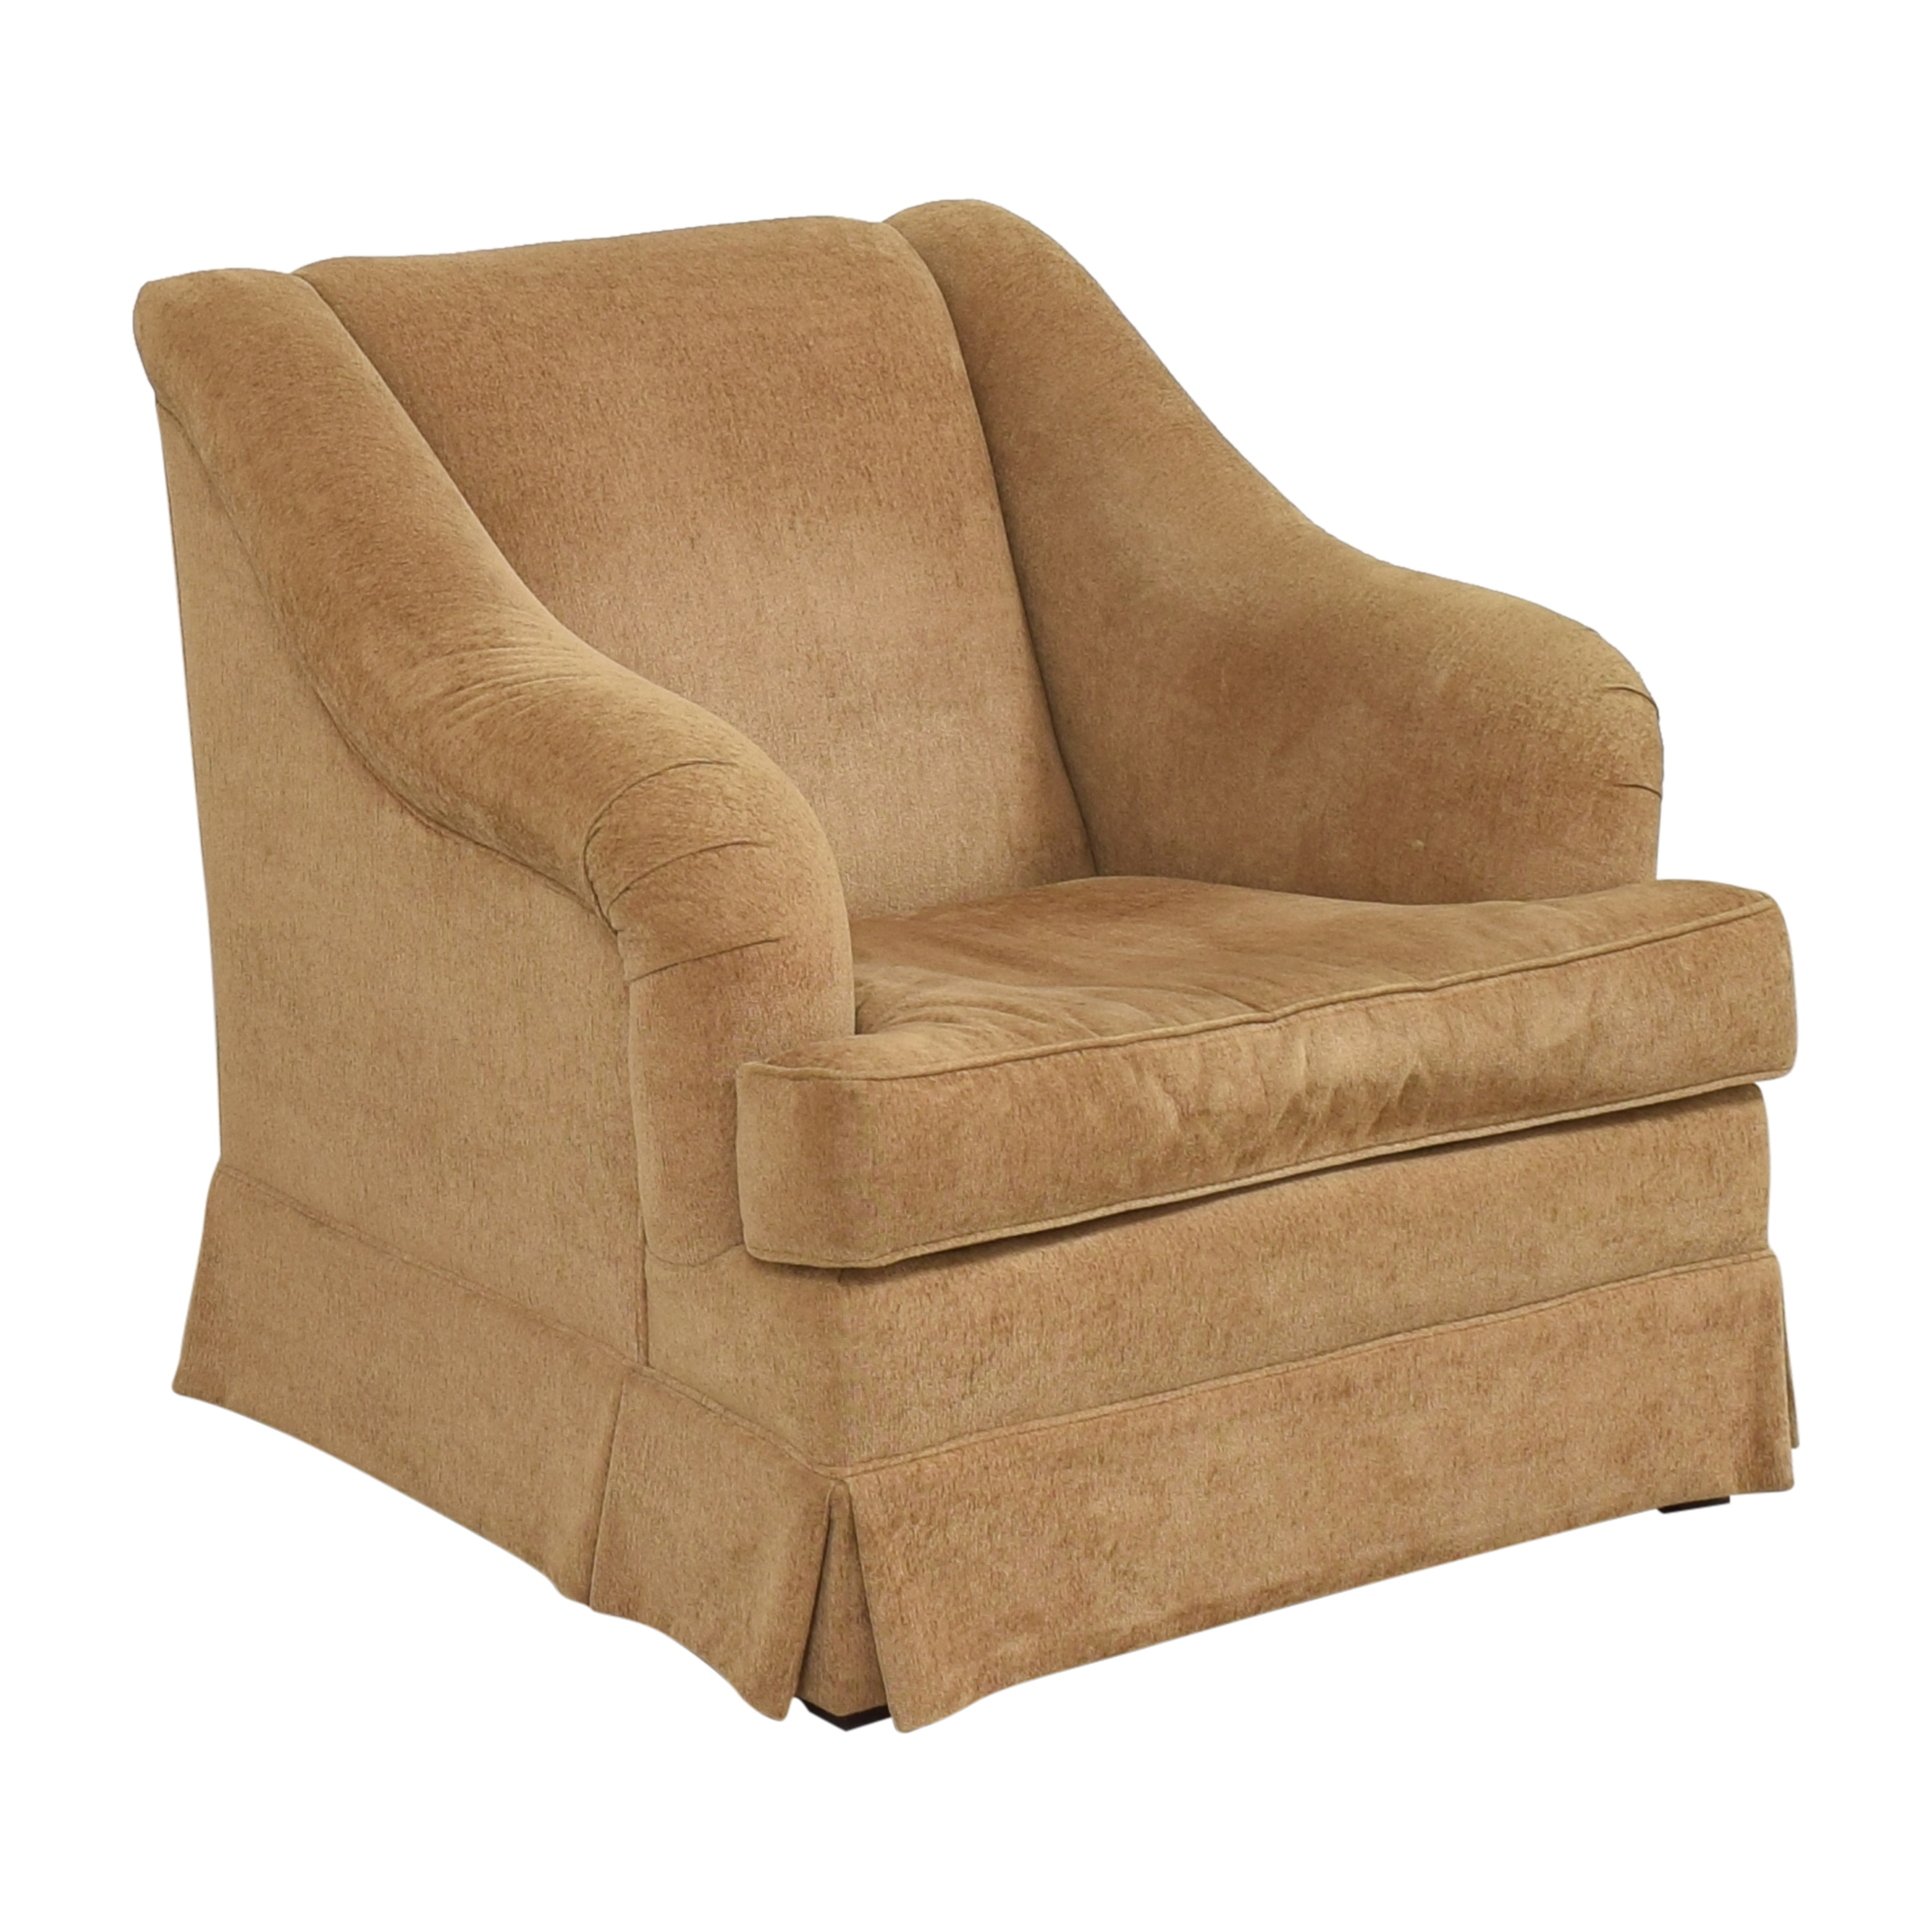 Pearson Pearson Skirted Accent Chair coupon